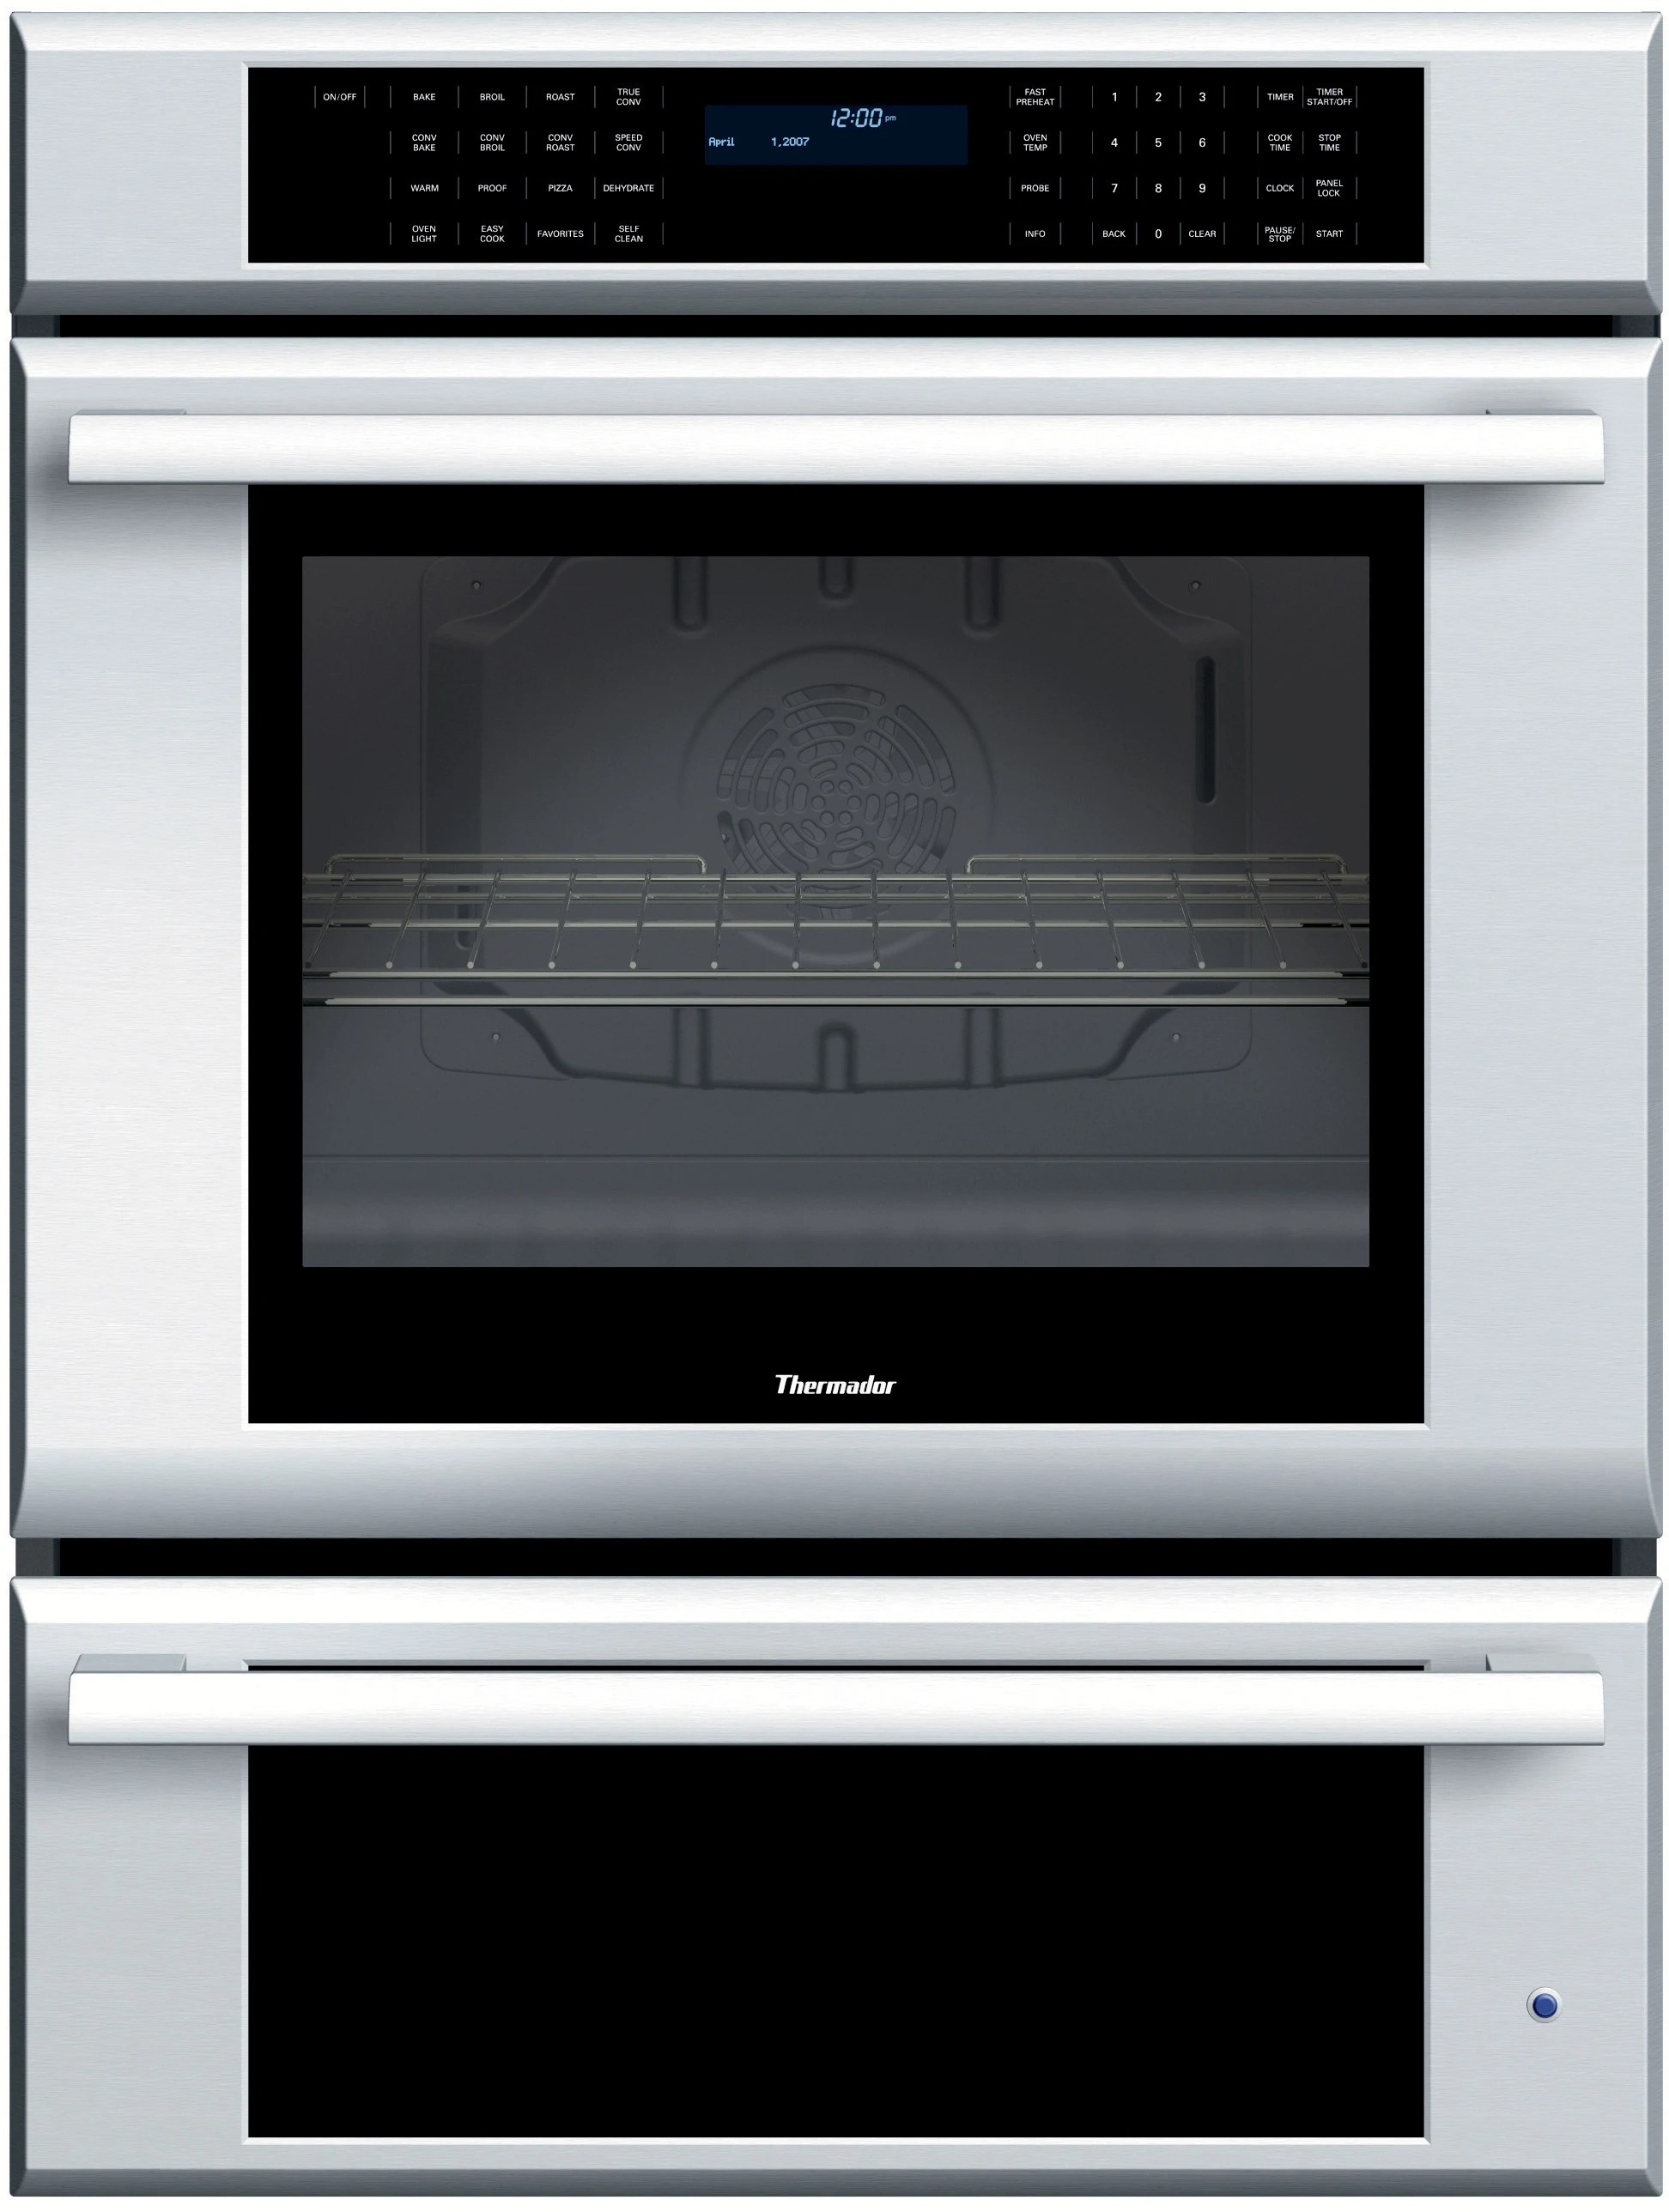 Countertop Warming Drawer Thermador Mew301es 30 Inch Single Electric Wall Oven With